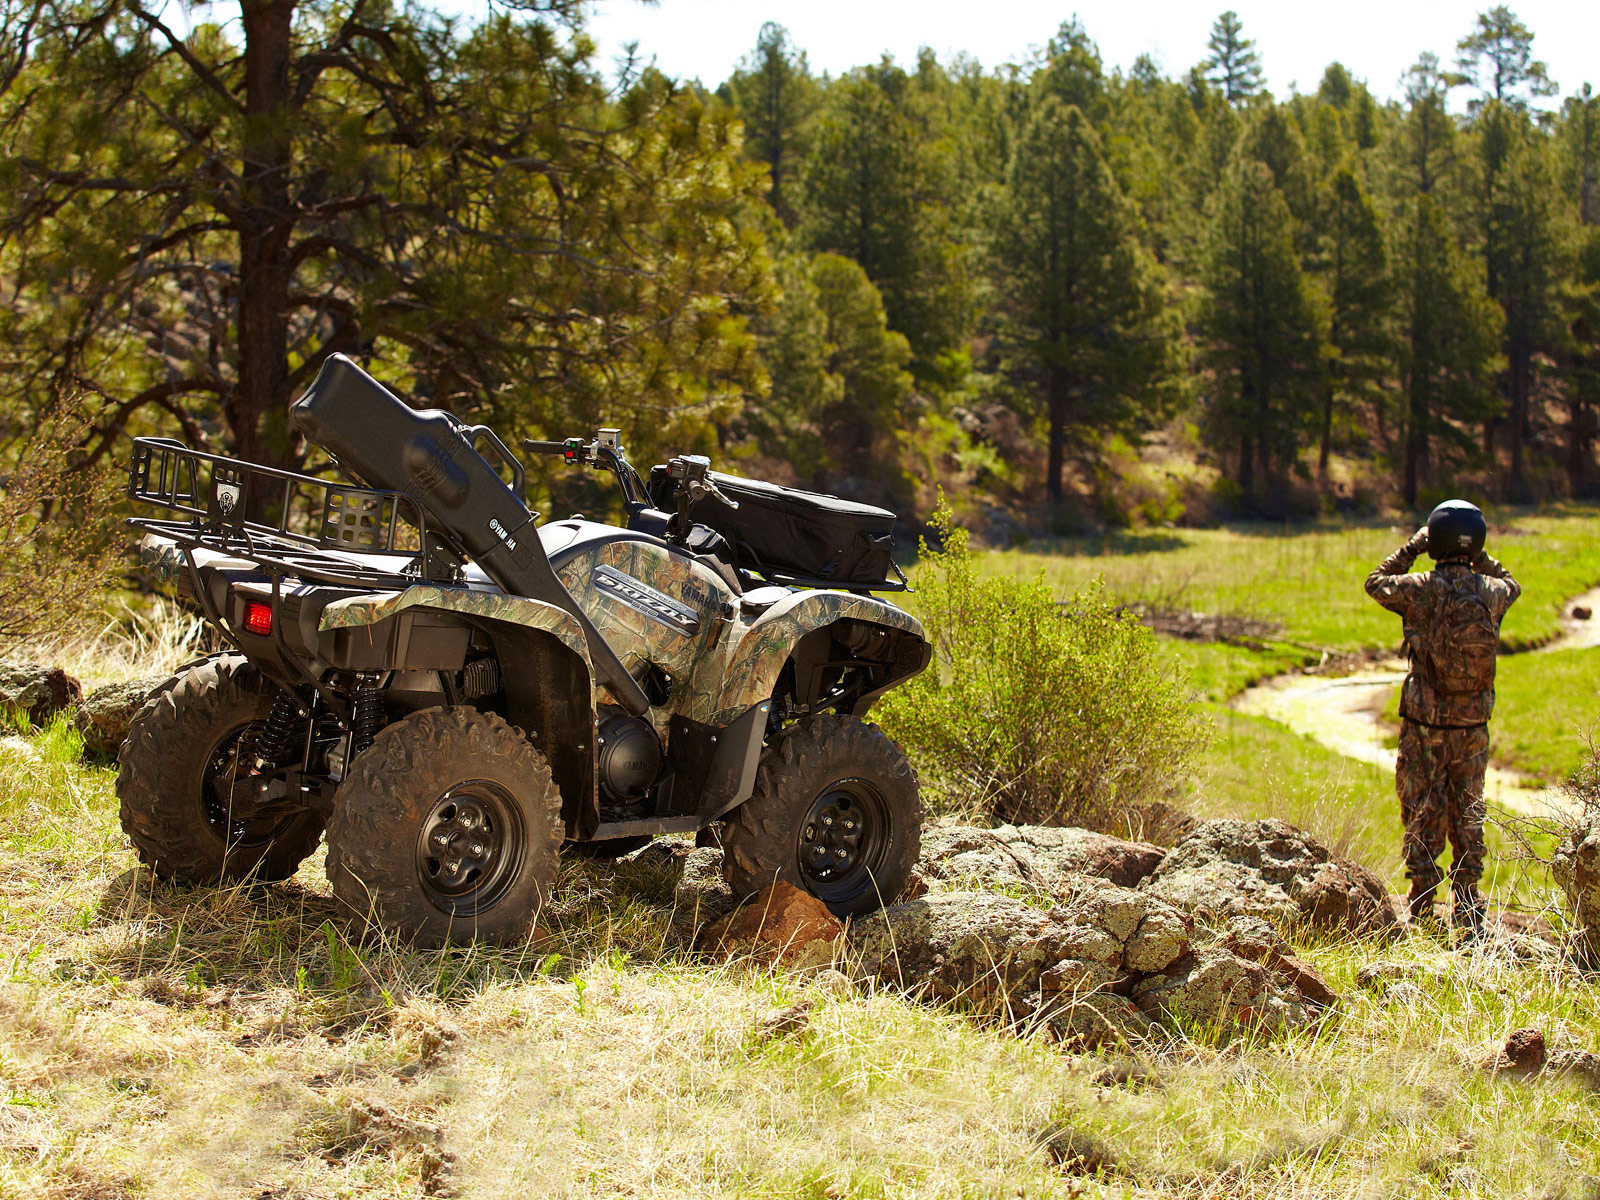 2012 yamaha grizzly 550 fi auto 4x4 eps atv pictures review 2012 yamaha grizzly 550 fi auto 4x4 eps atv pictures 2 sciox Image collections